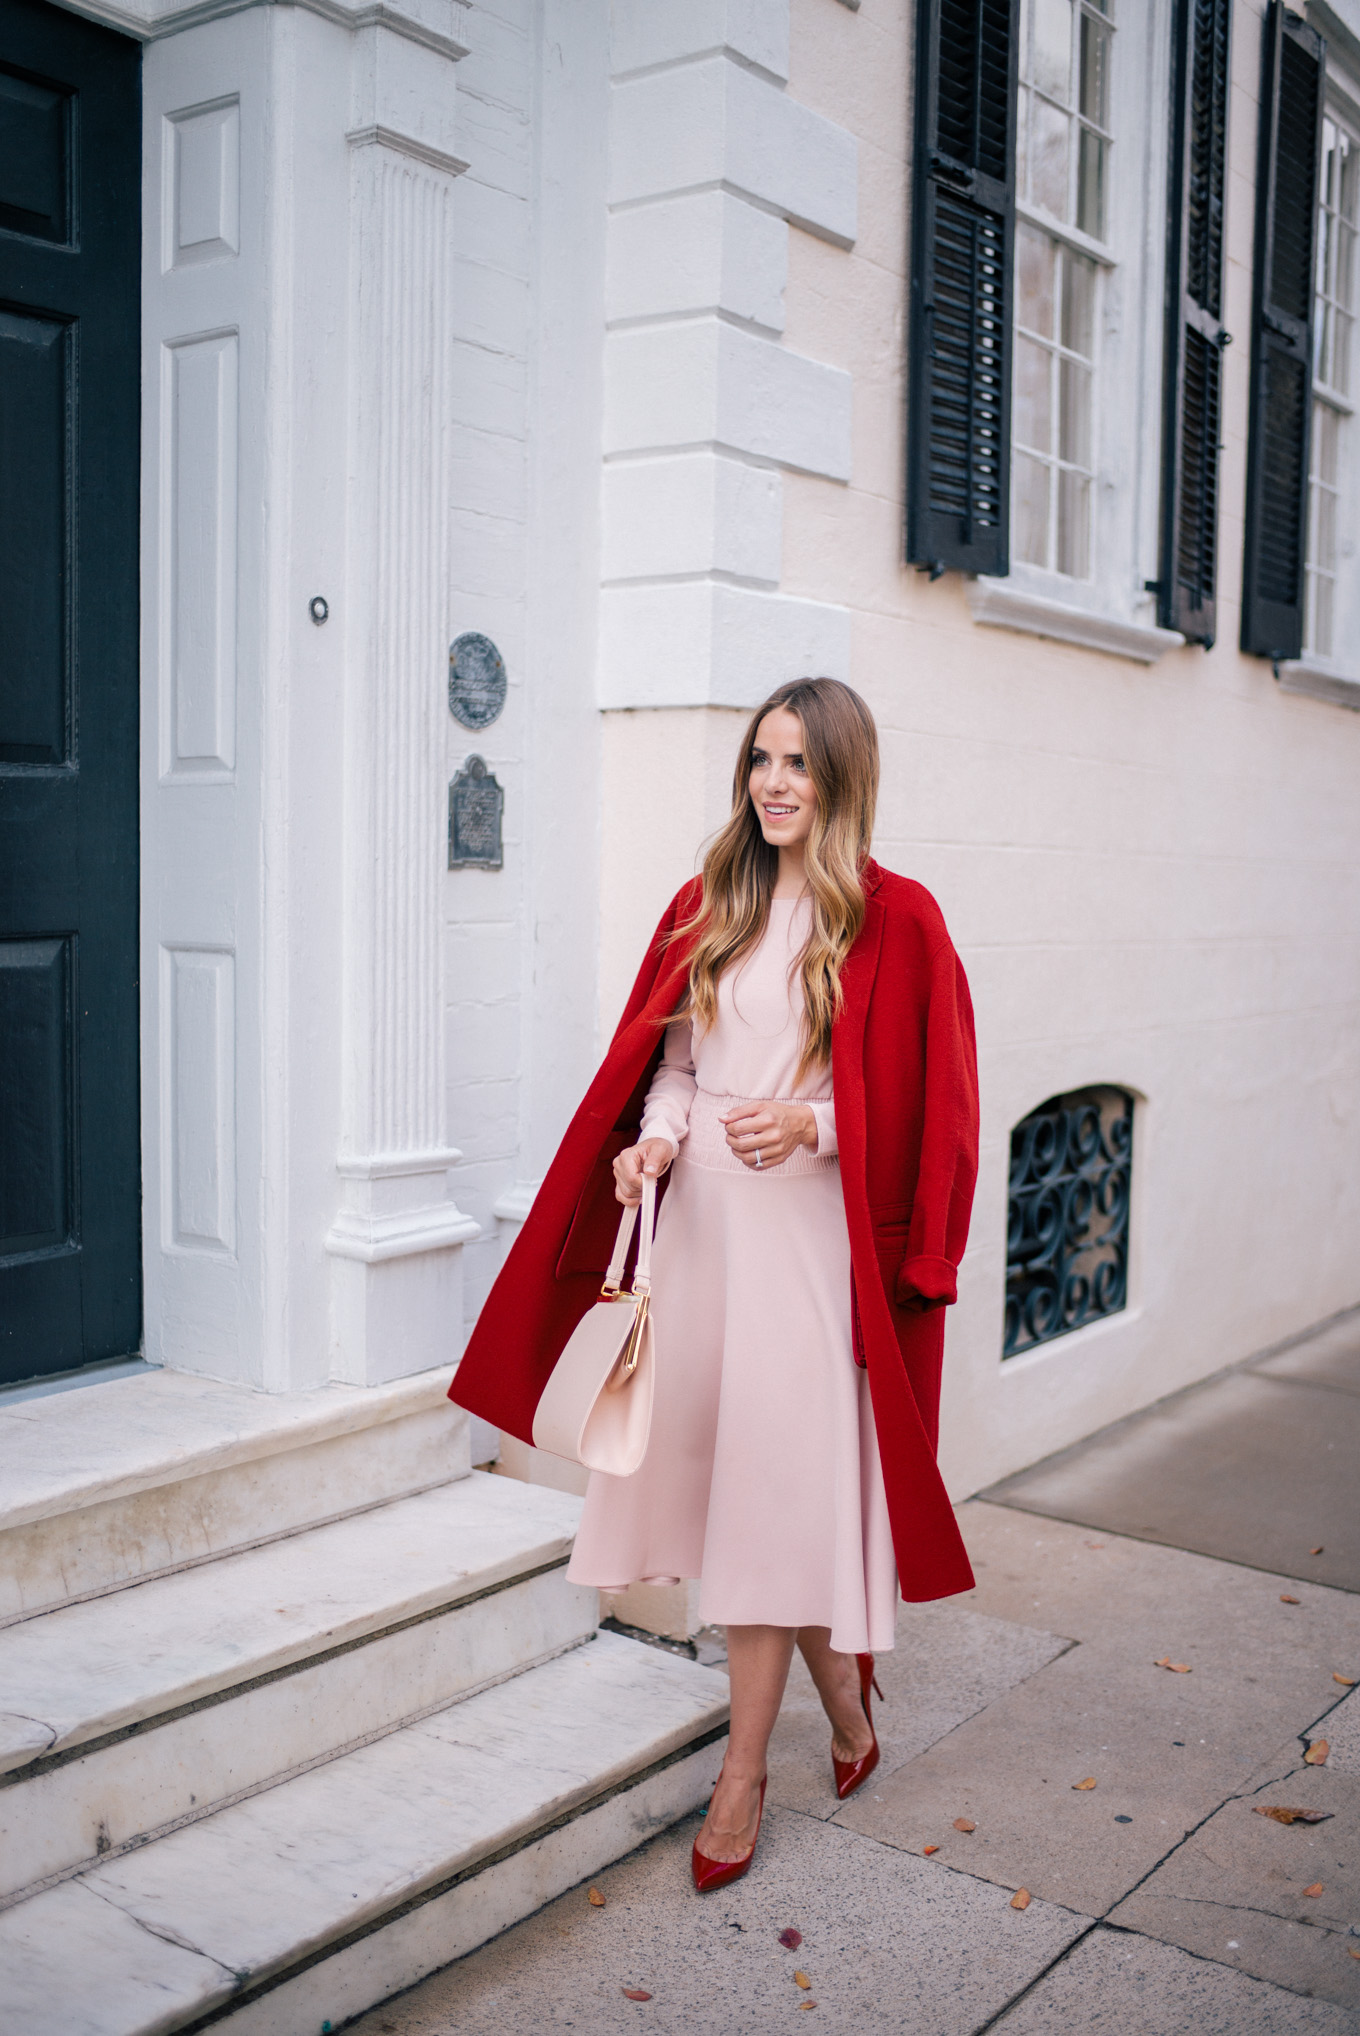 gmg-pink-dress-red-coat-1009509